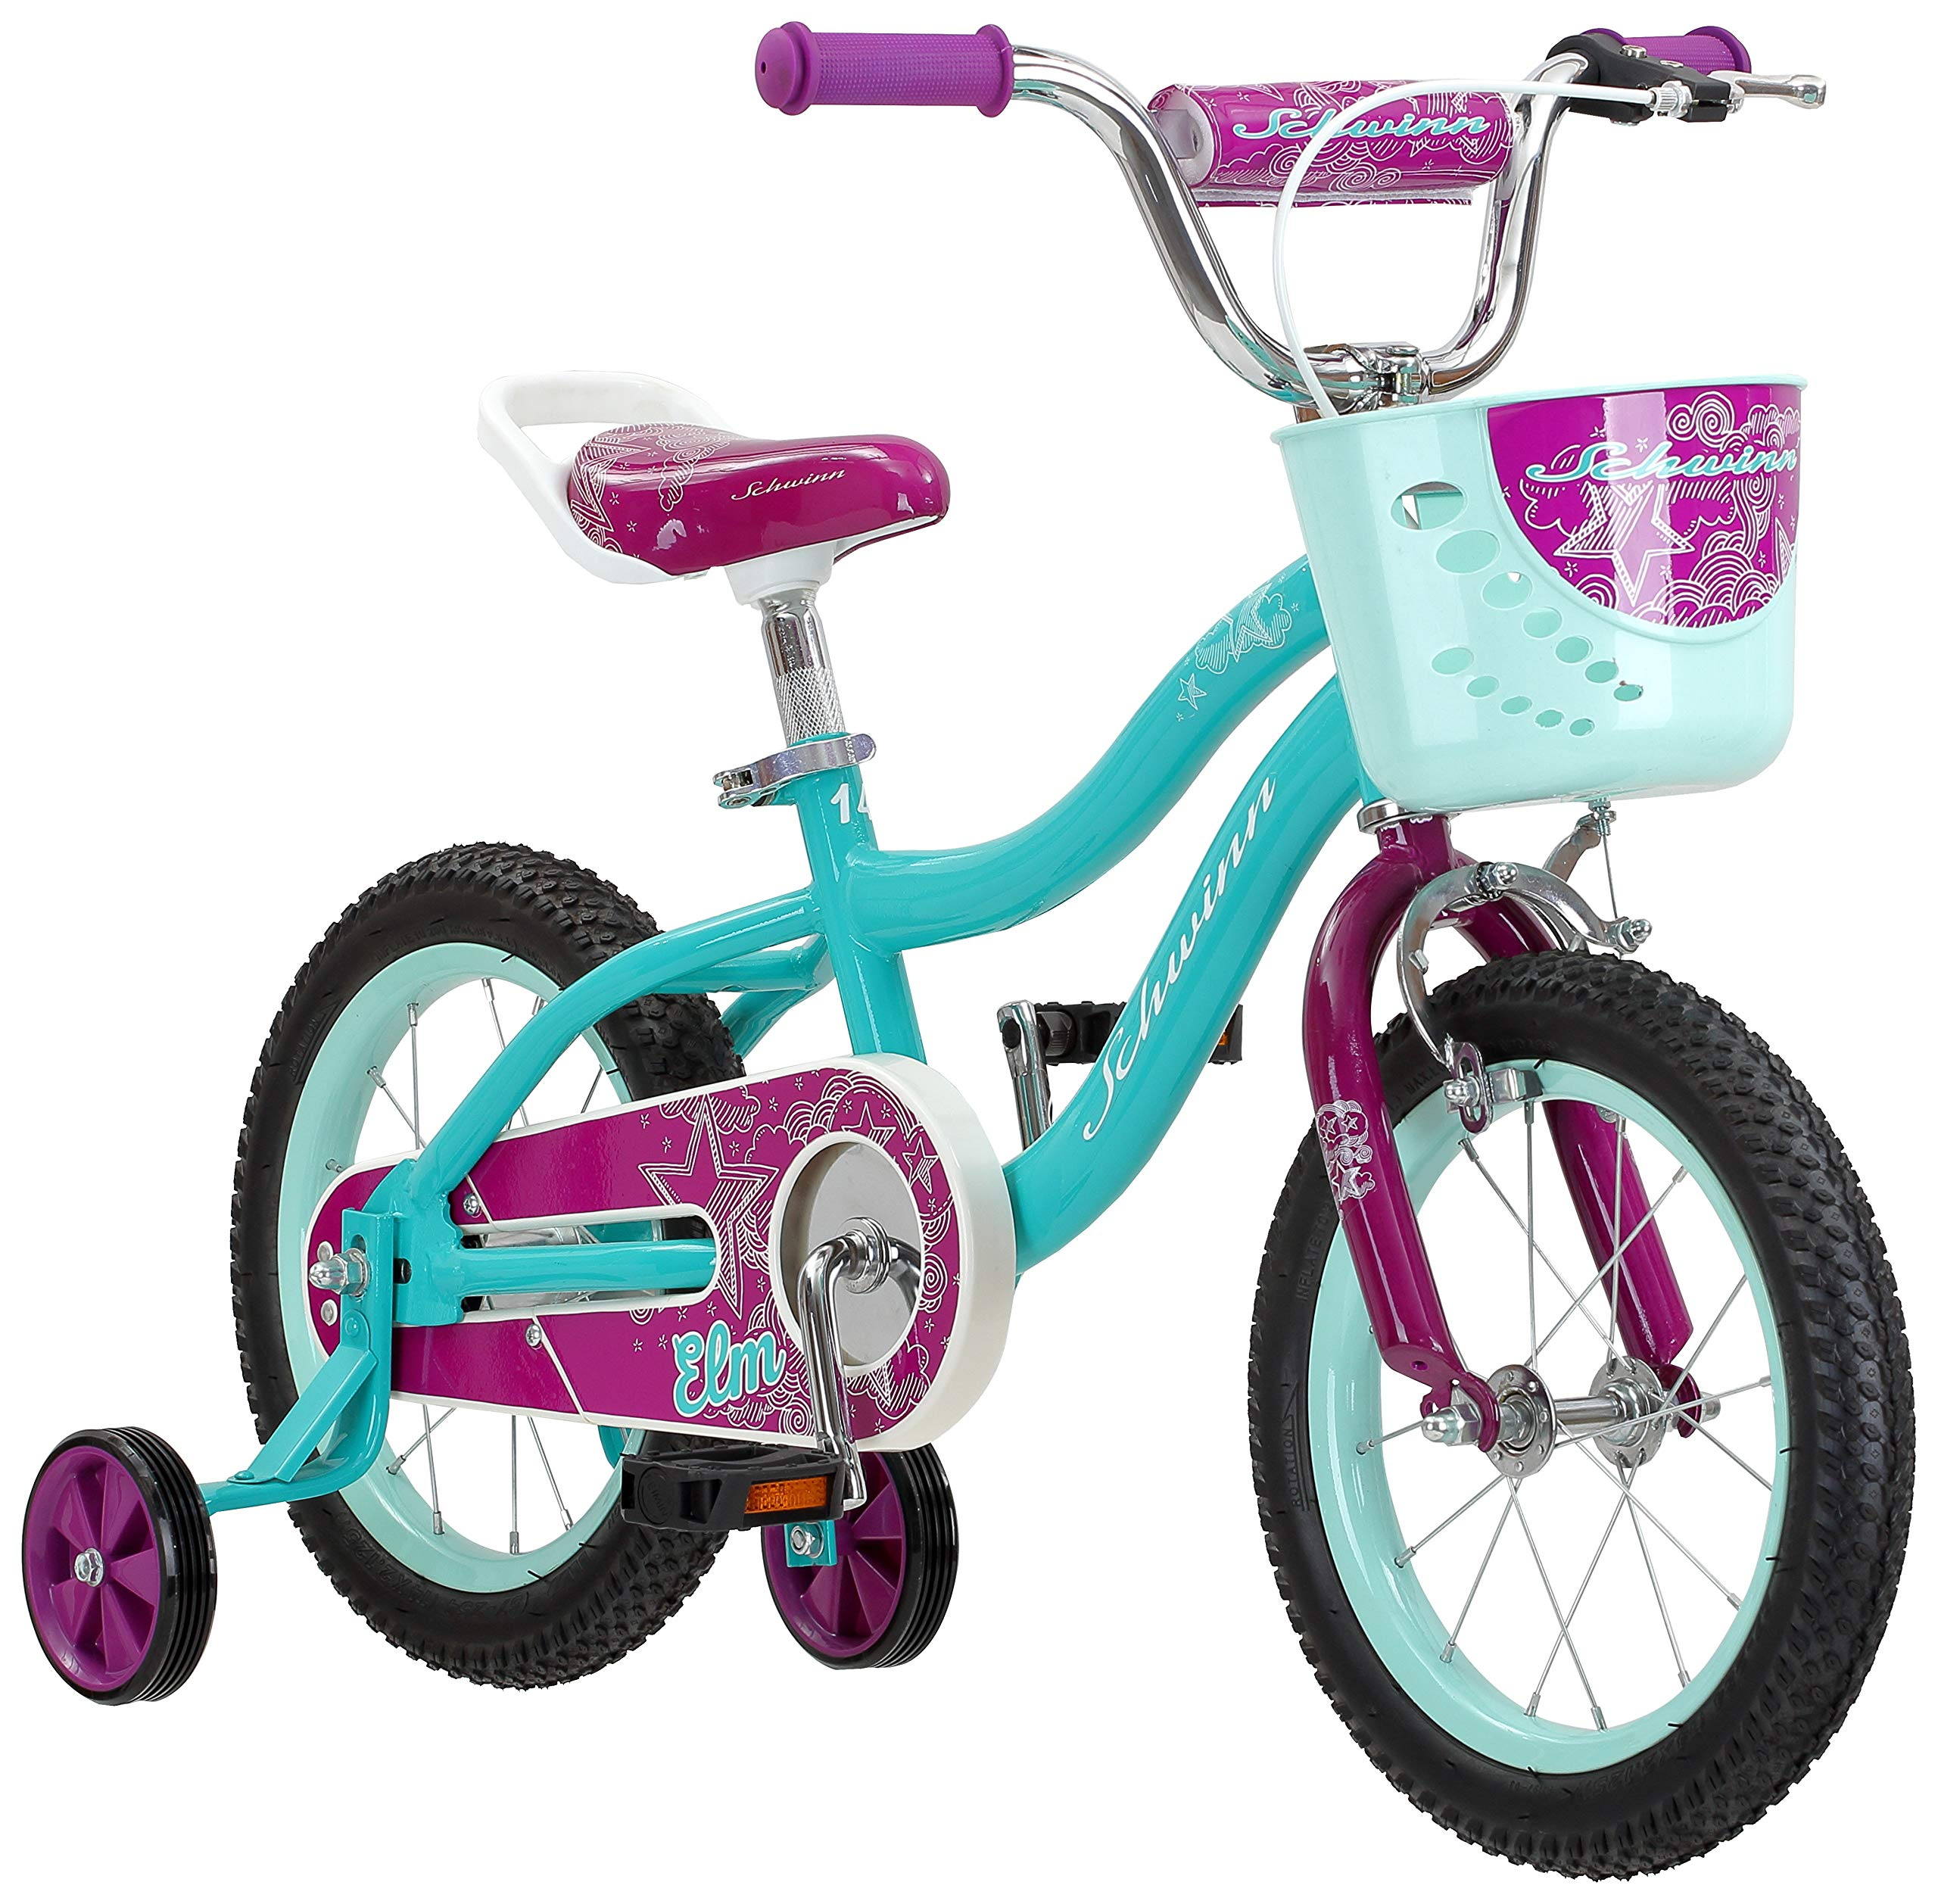 Schwinn Elm Girl's Bike with SmartStart, 14'' Wheels, Teal